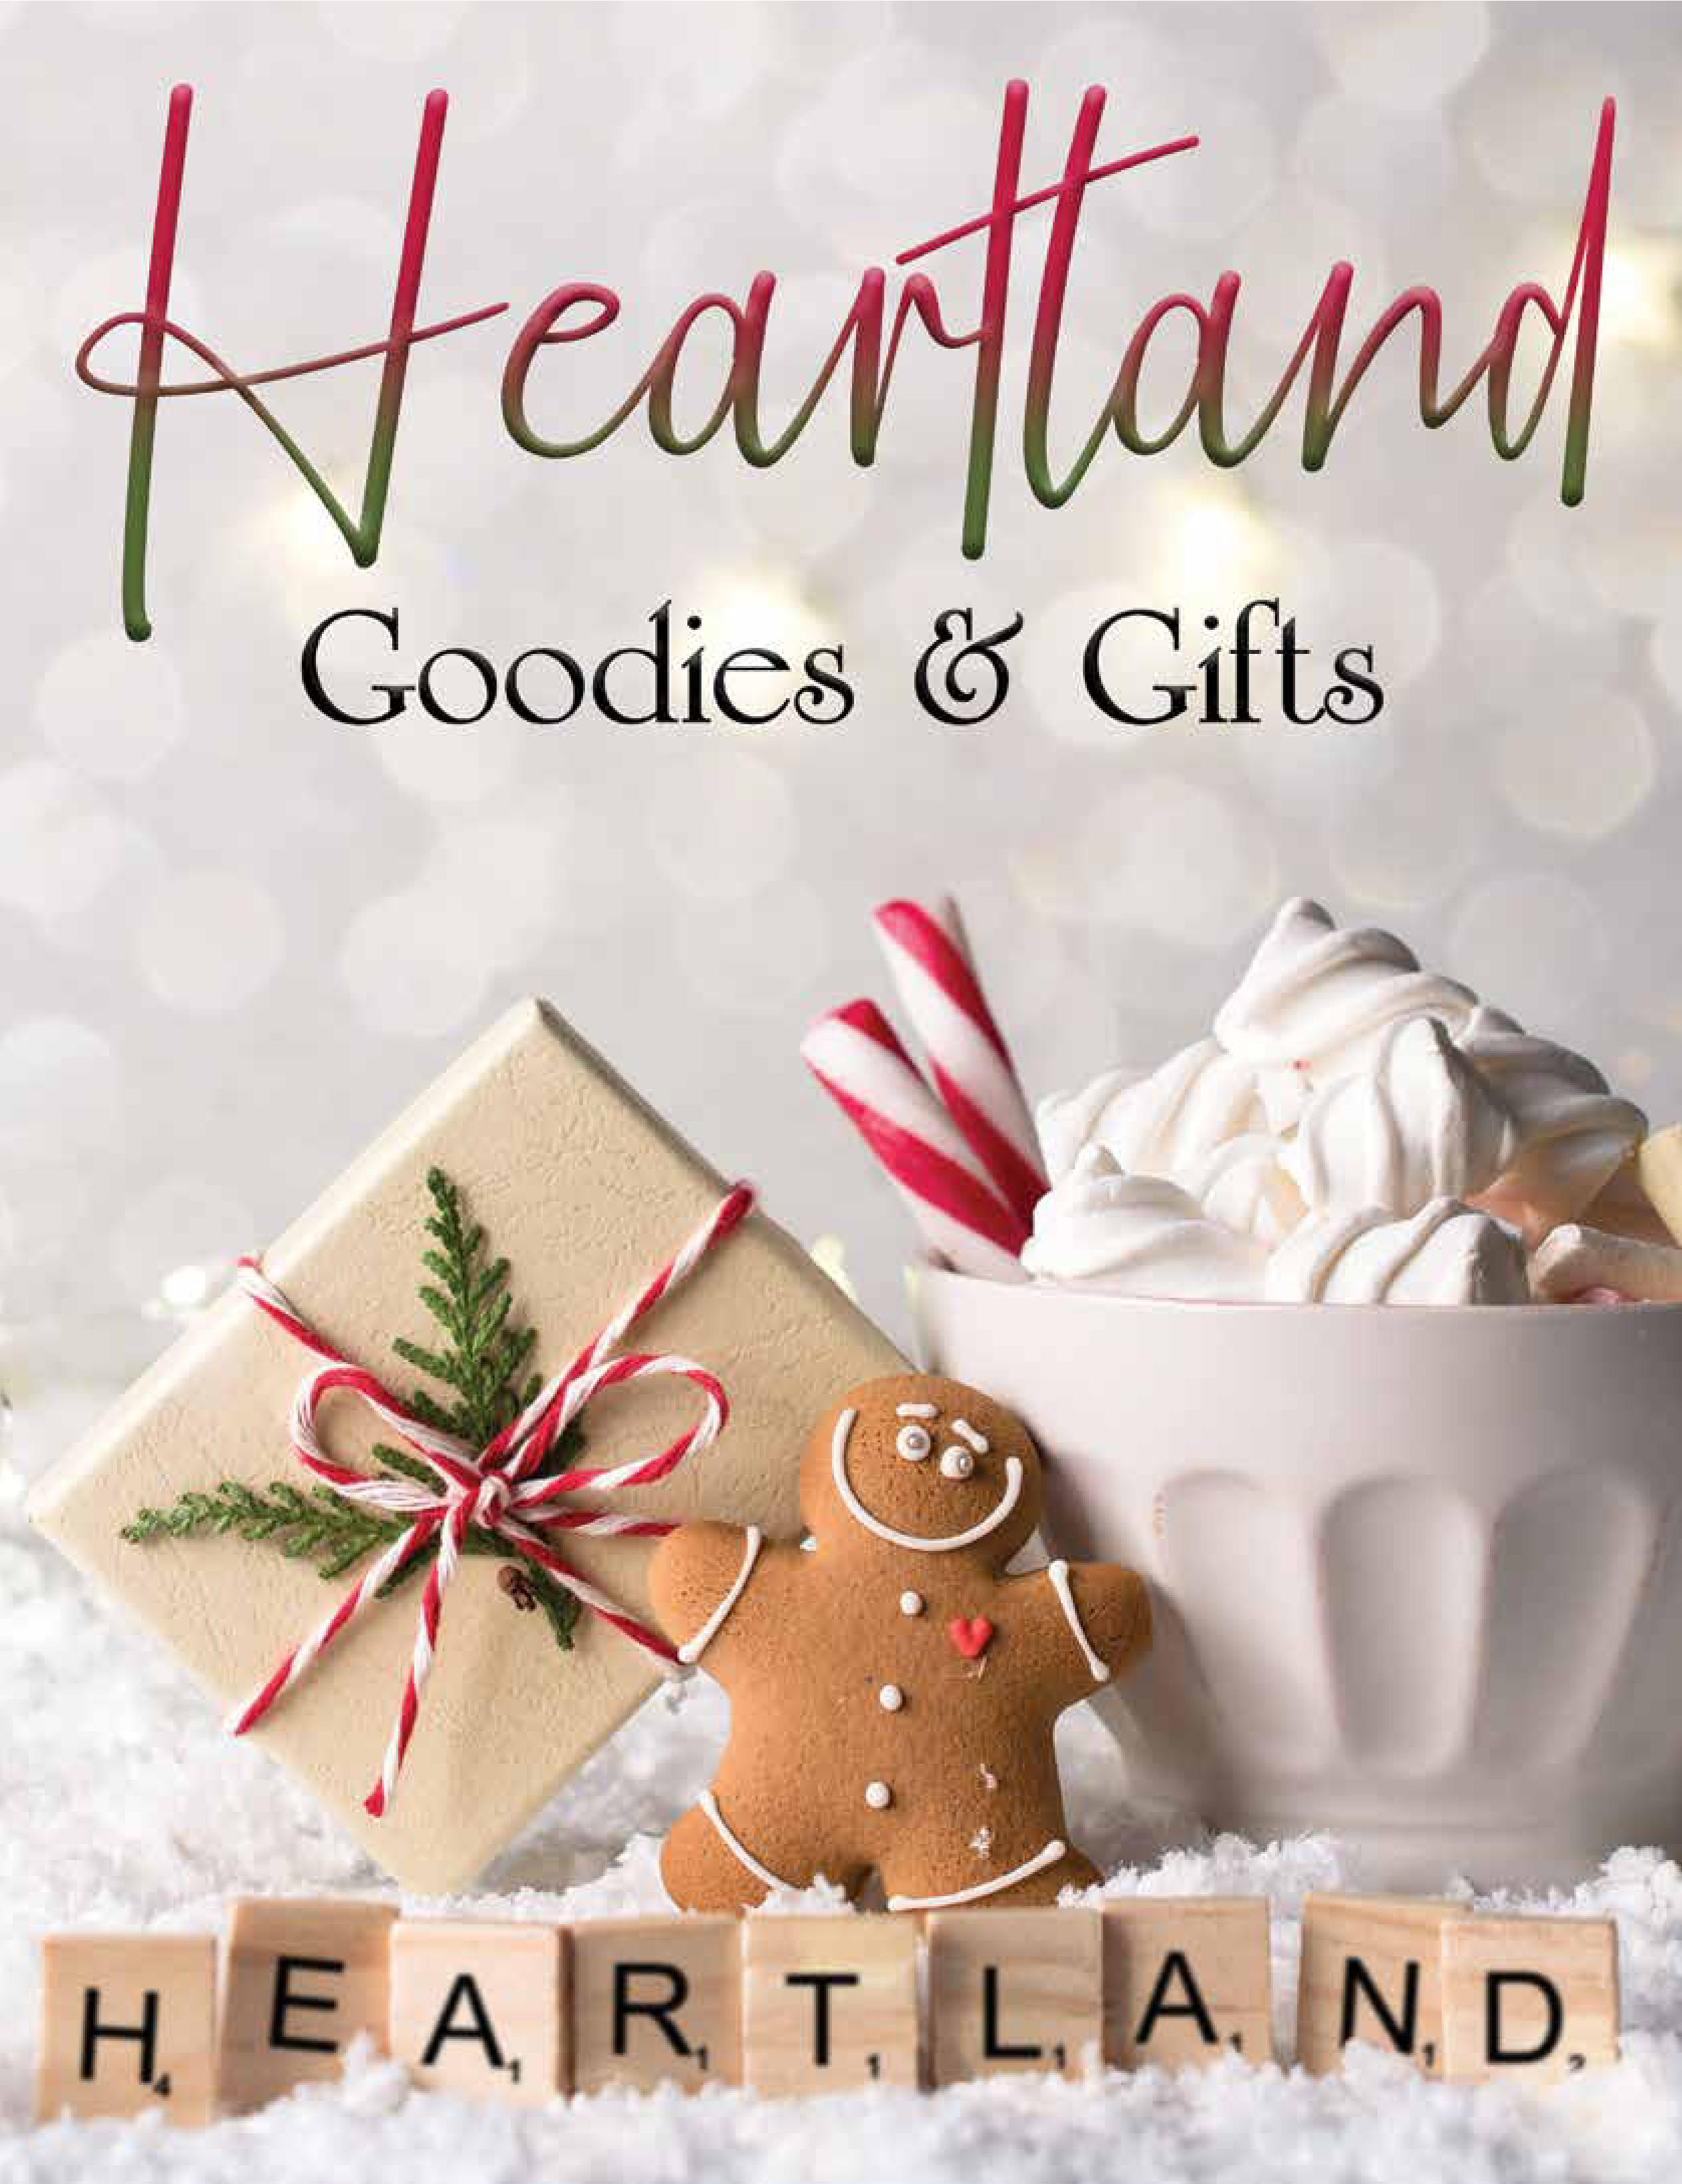 Heartland Goodies and Gifts Brochure